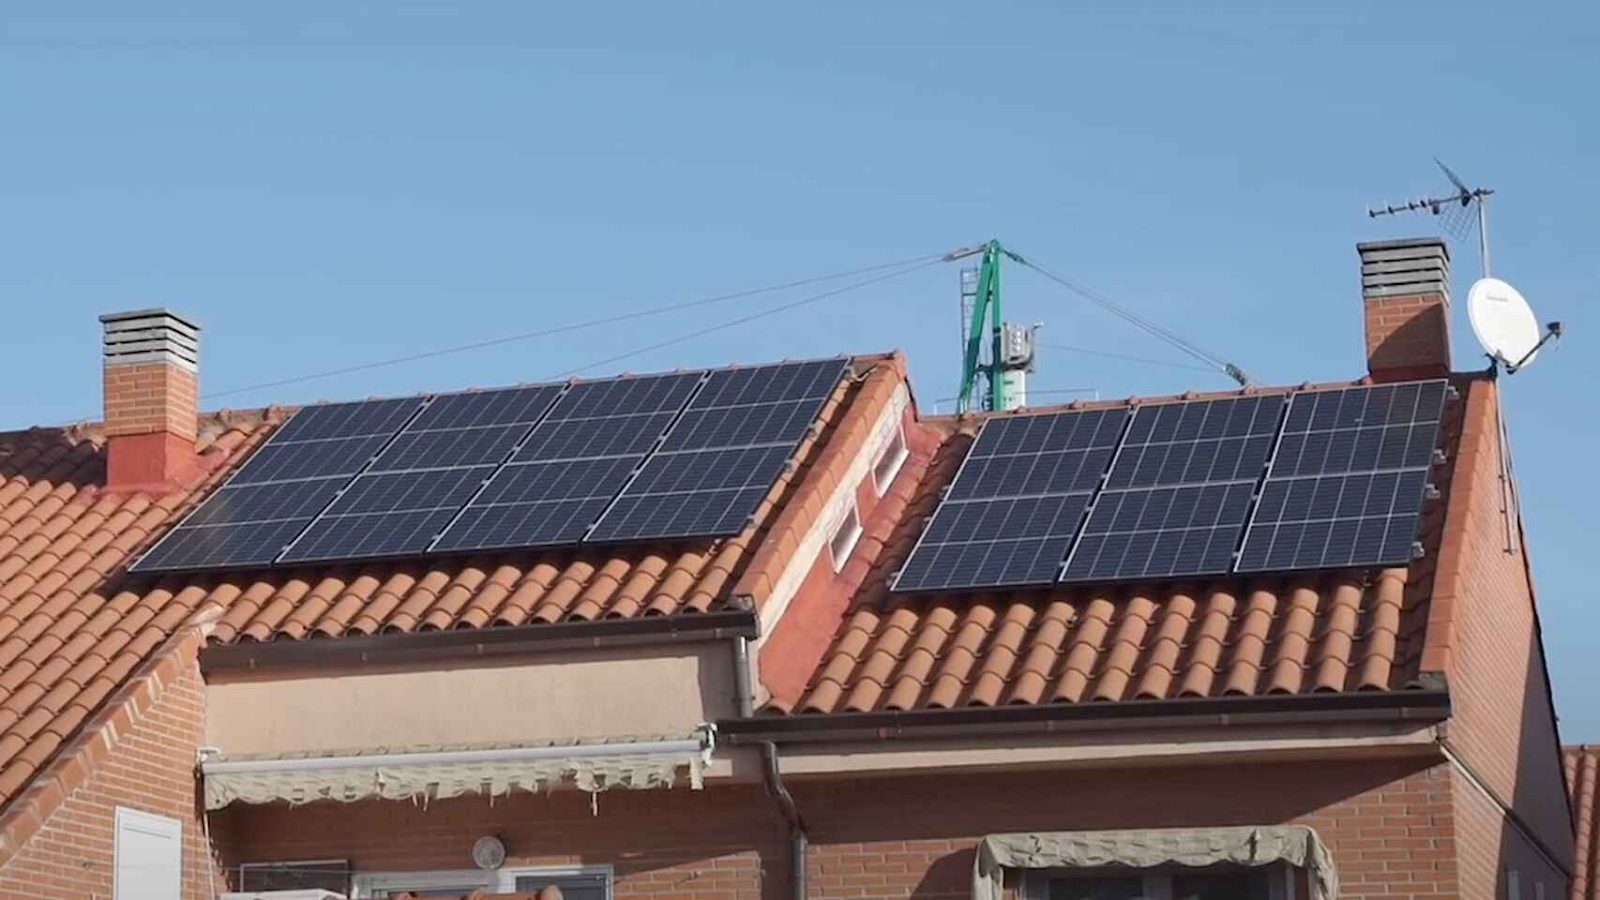 Photovoltaic solar energy for the home